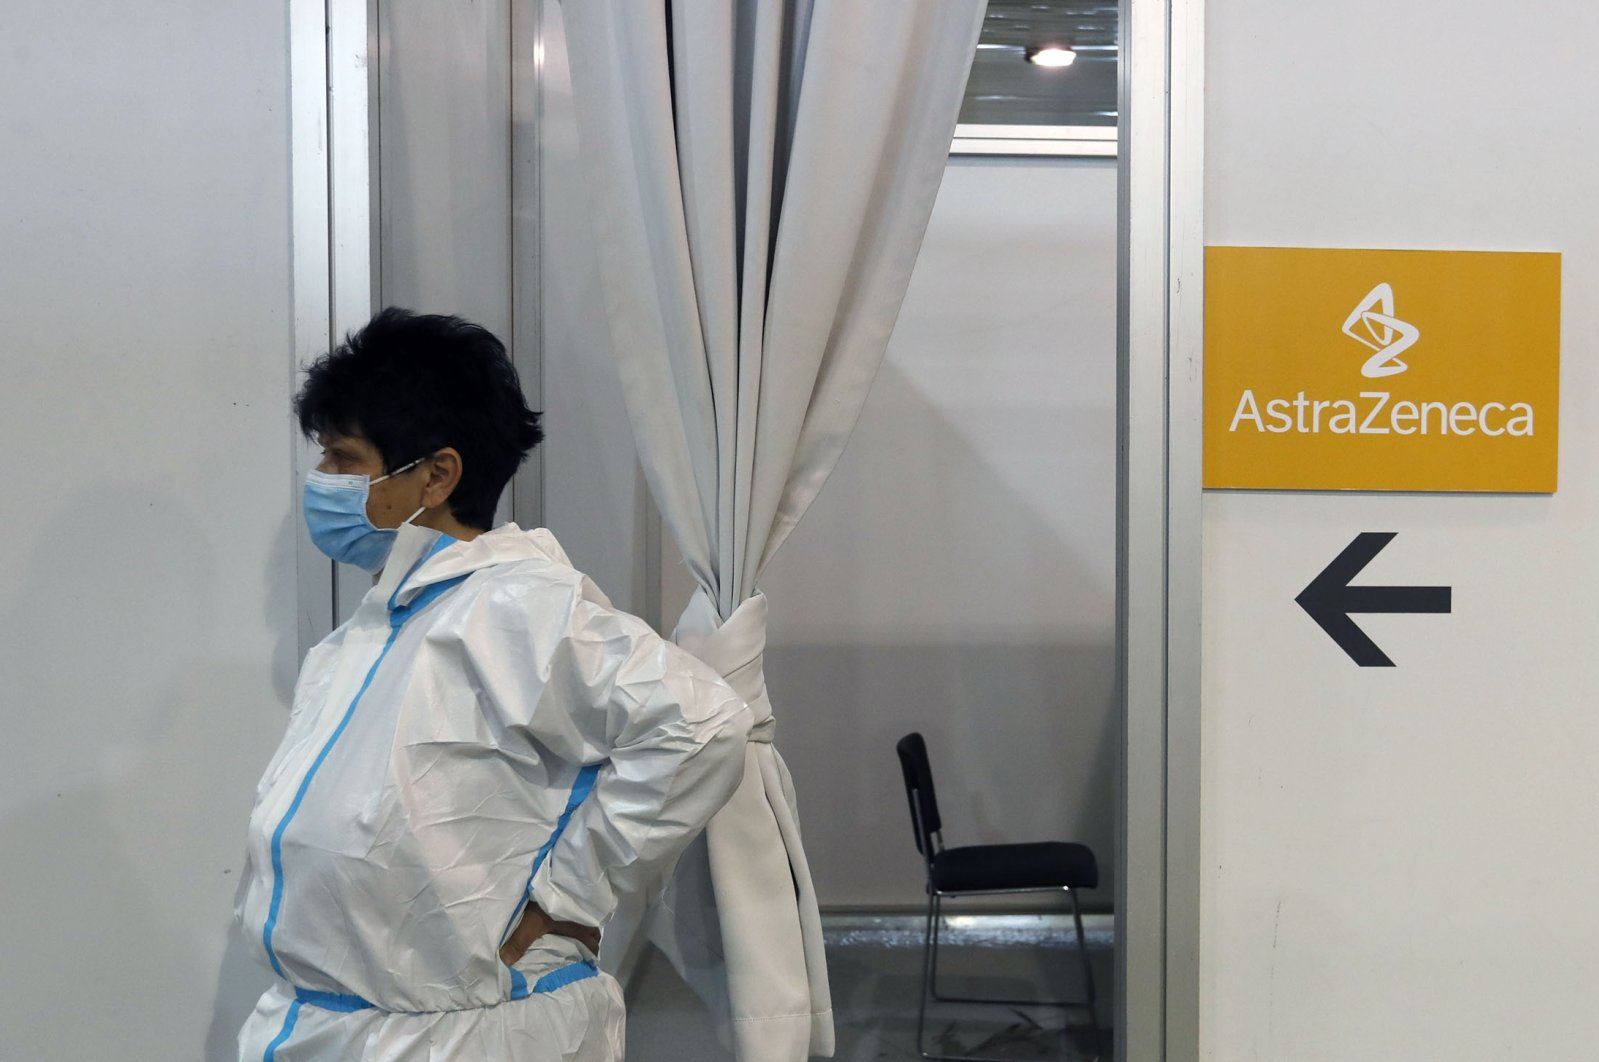 A medical worker wearing protective gear waits for people to receive the COVID-19 vaccine at a vaccination center in Belgrade, Serbia, March 23, 2021. (AP Photo)